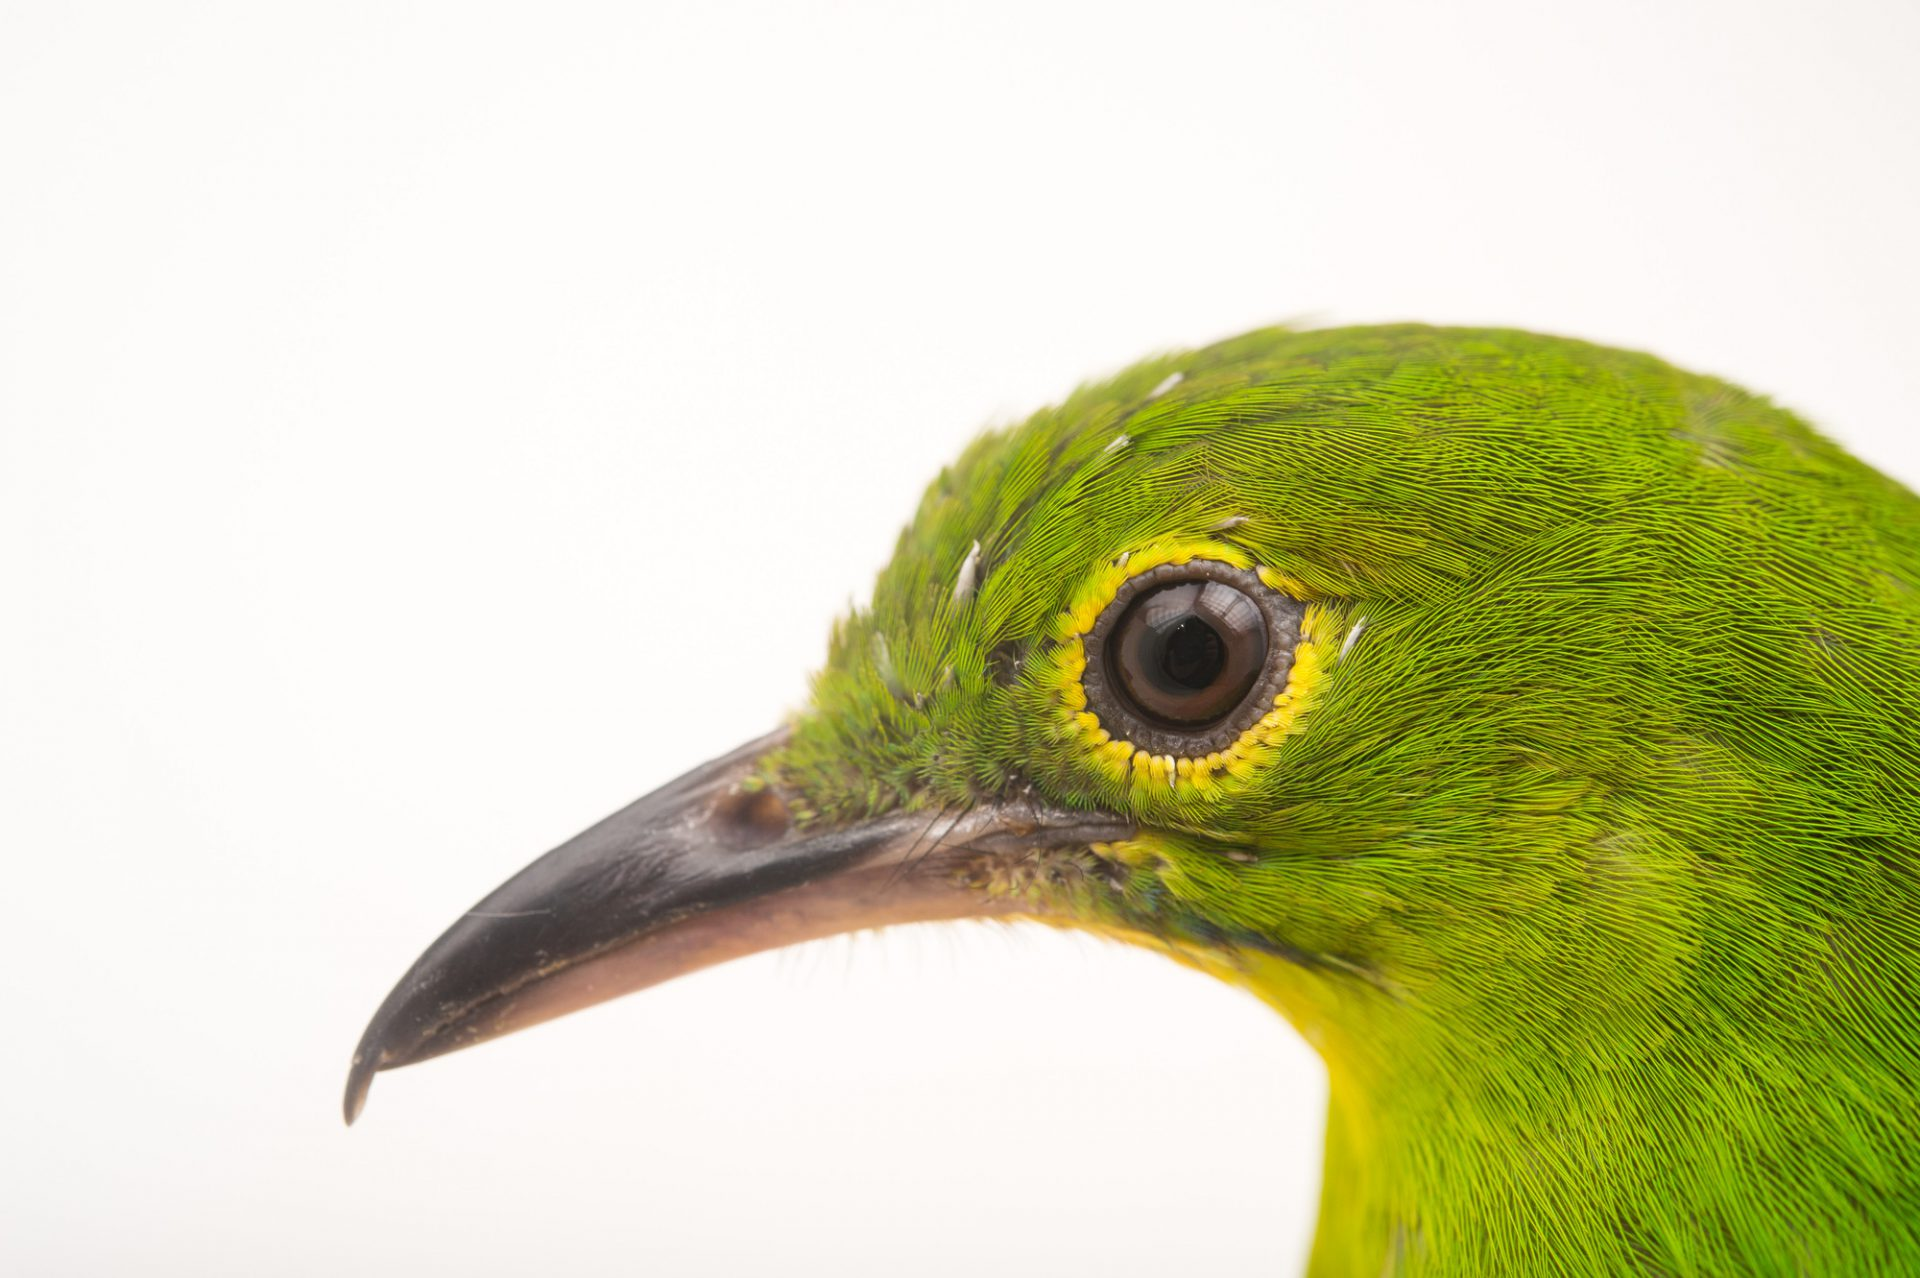 Picture of a female greater green leafbird (Chloropsis sonnerati) at the Sedgwick County Zoo.